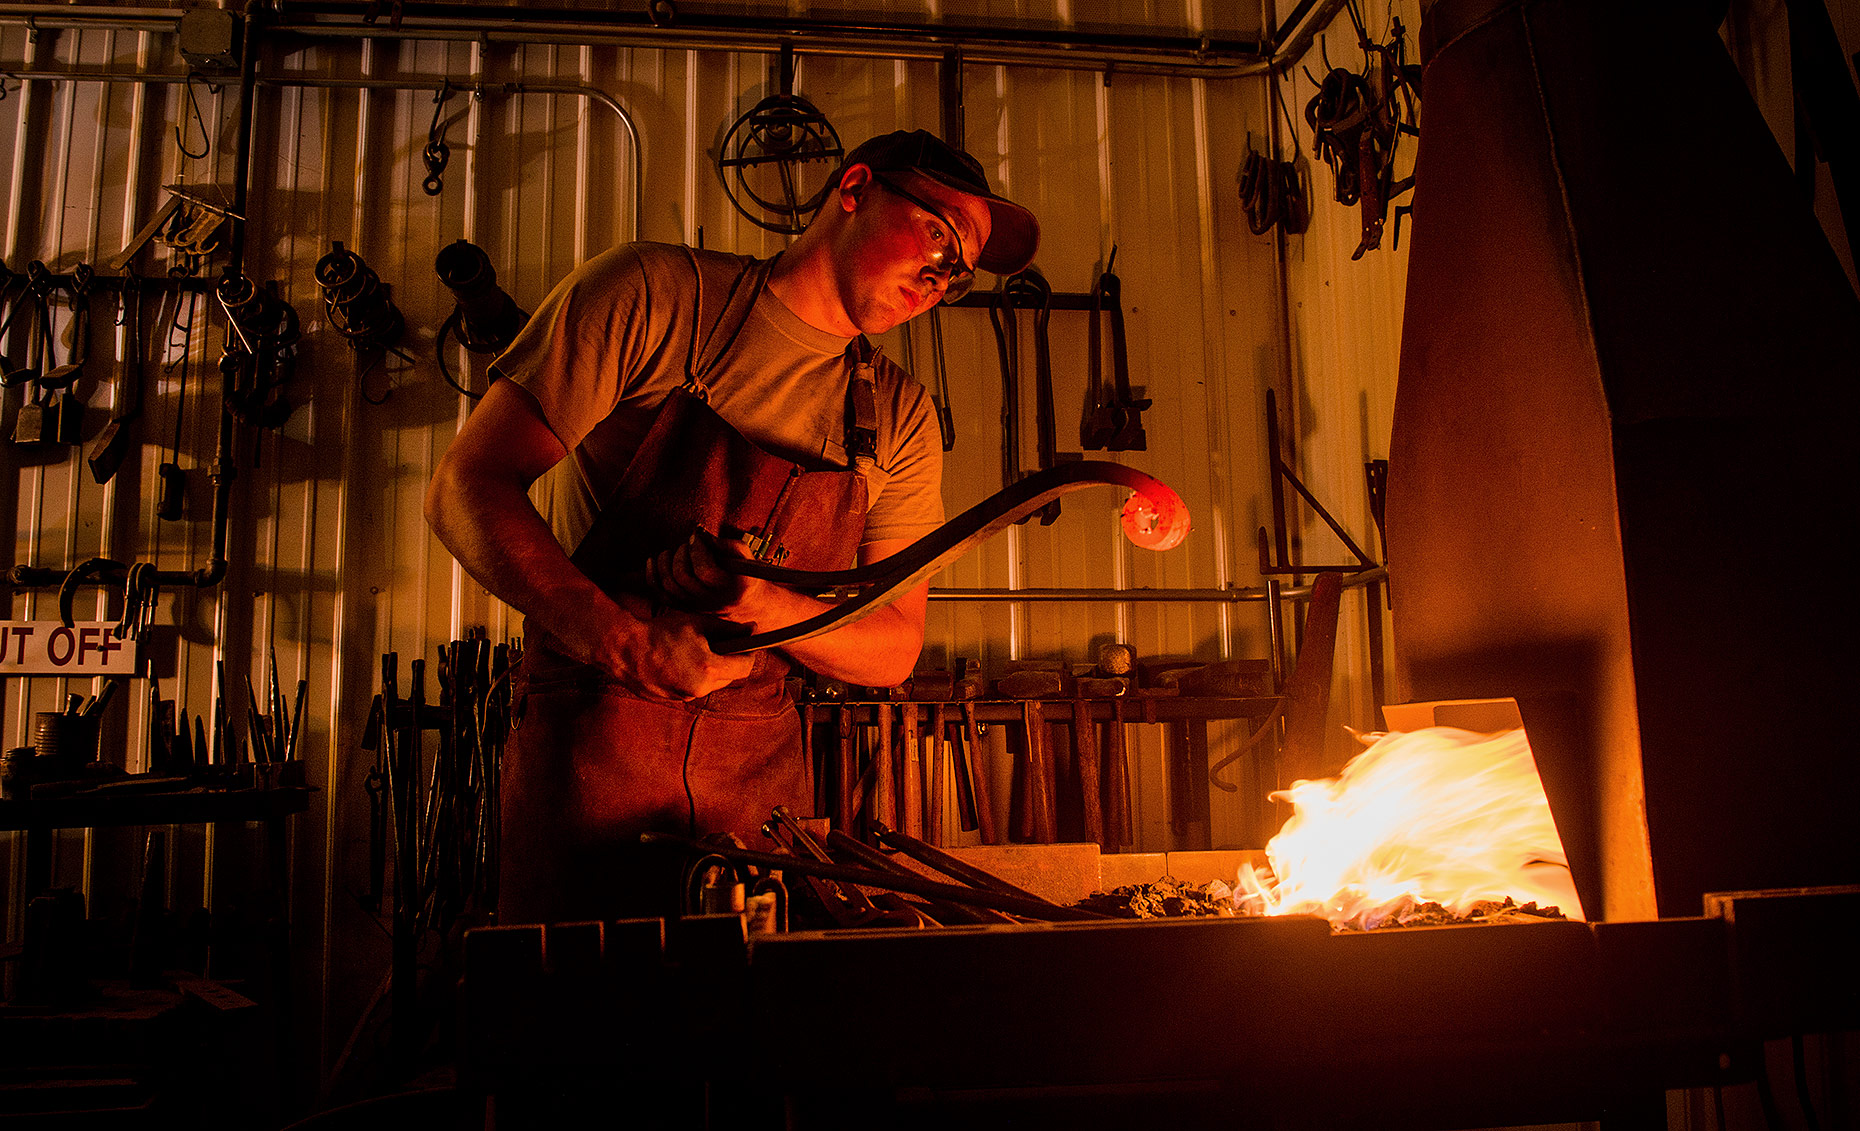 Blacksmith Working with Fire